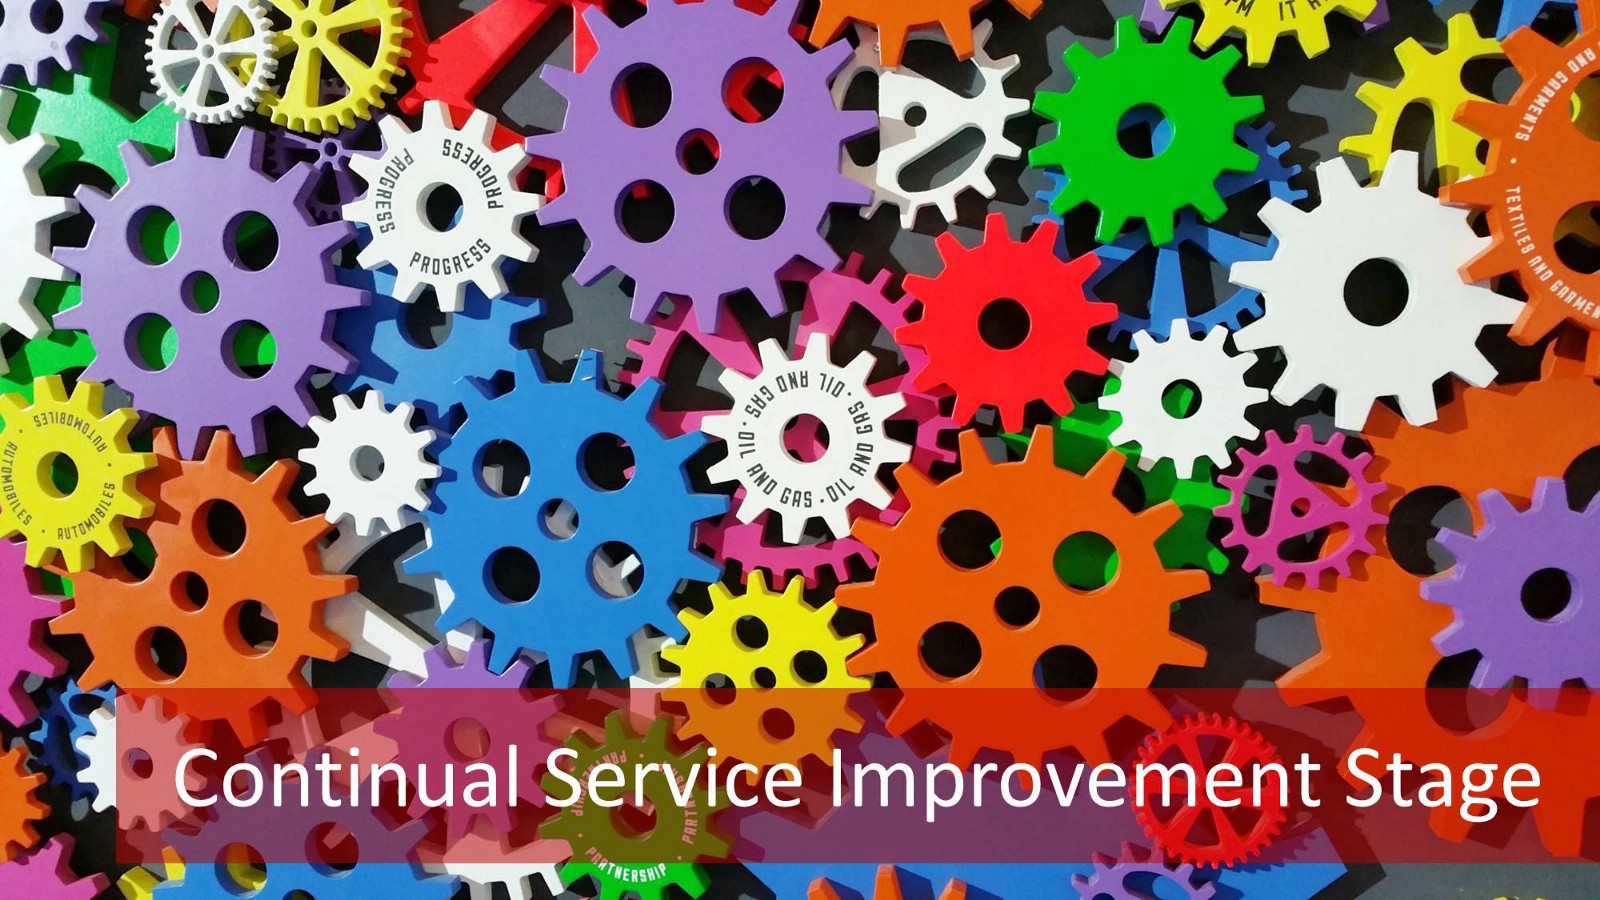 Service operation processes service strategy service design service - Service Strategy Is At The Heart Of The Process And Feeds Into The Service Design Service Transition And Service Operation